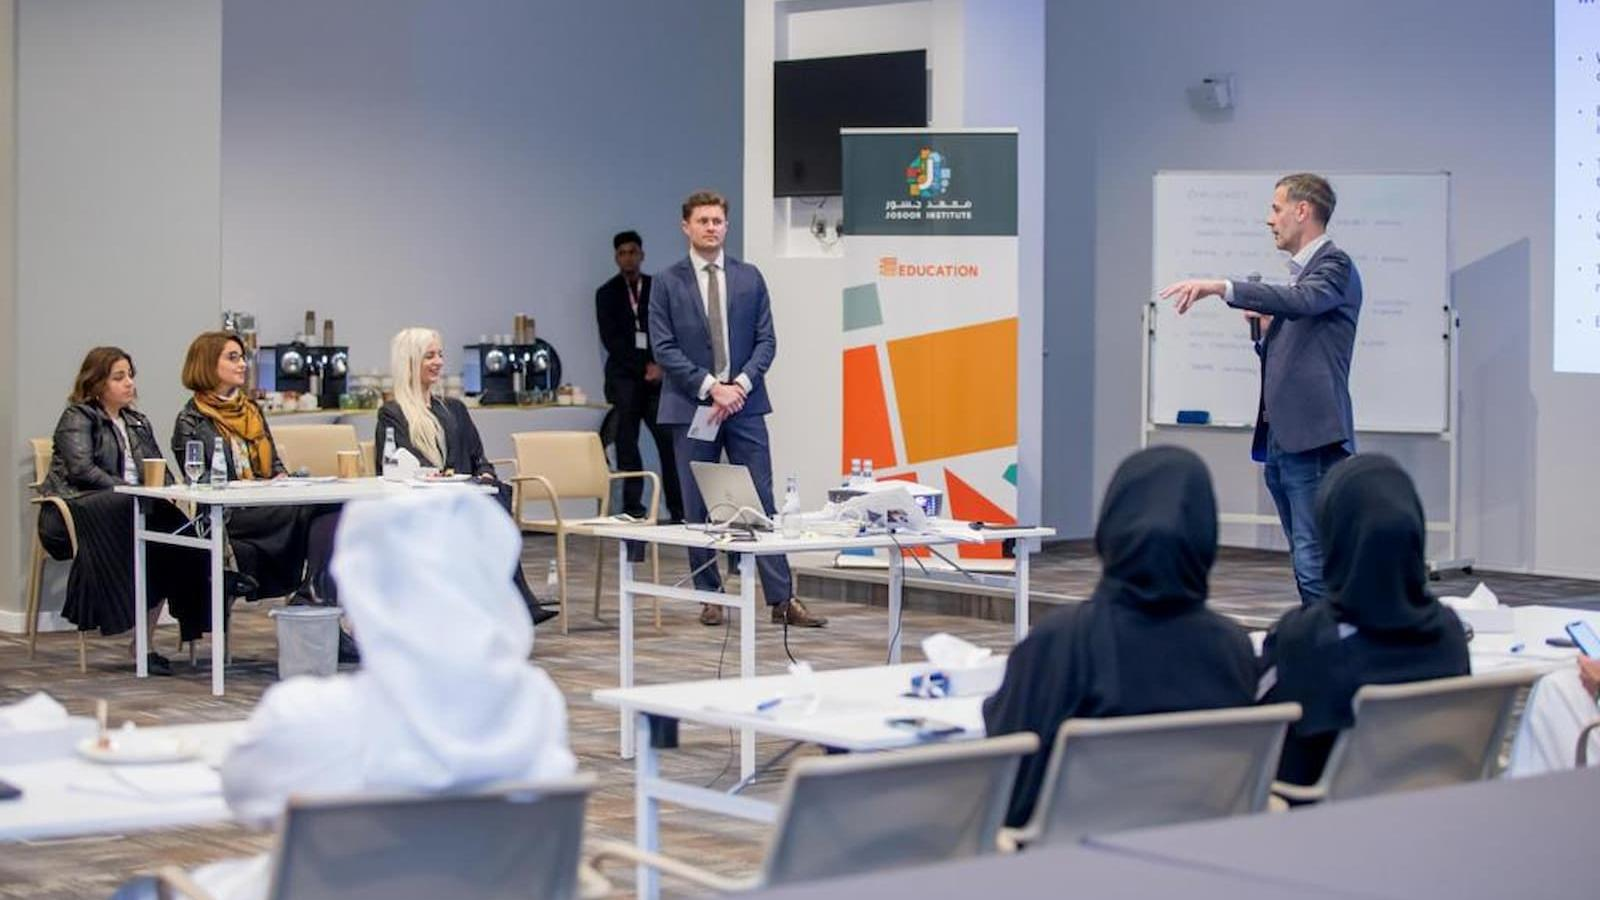 Josoor Institute continues to build expertise on the road to Qatar 2022: Afraa Al Noaimi